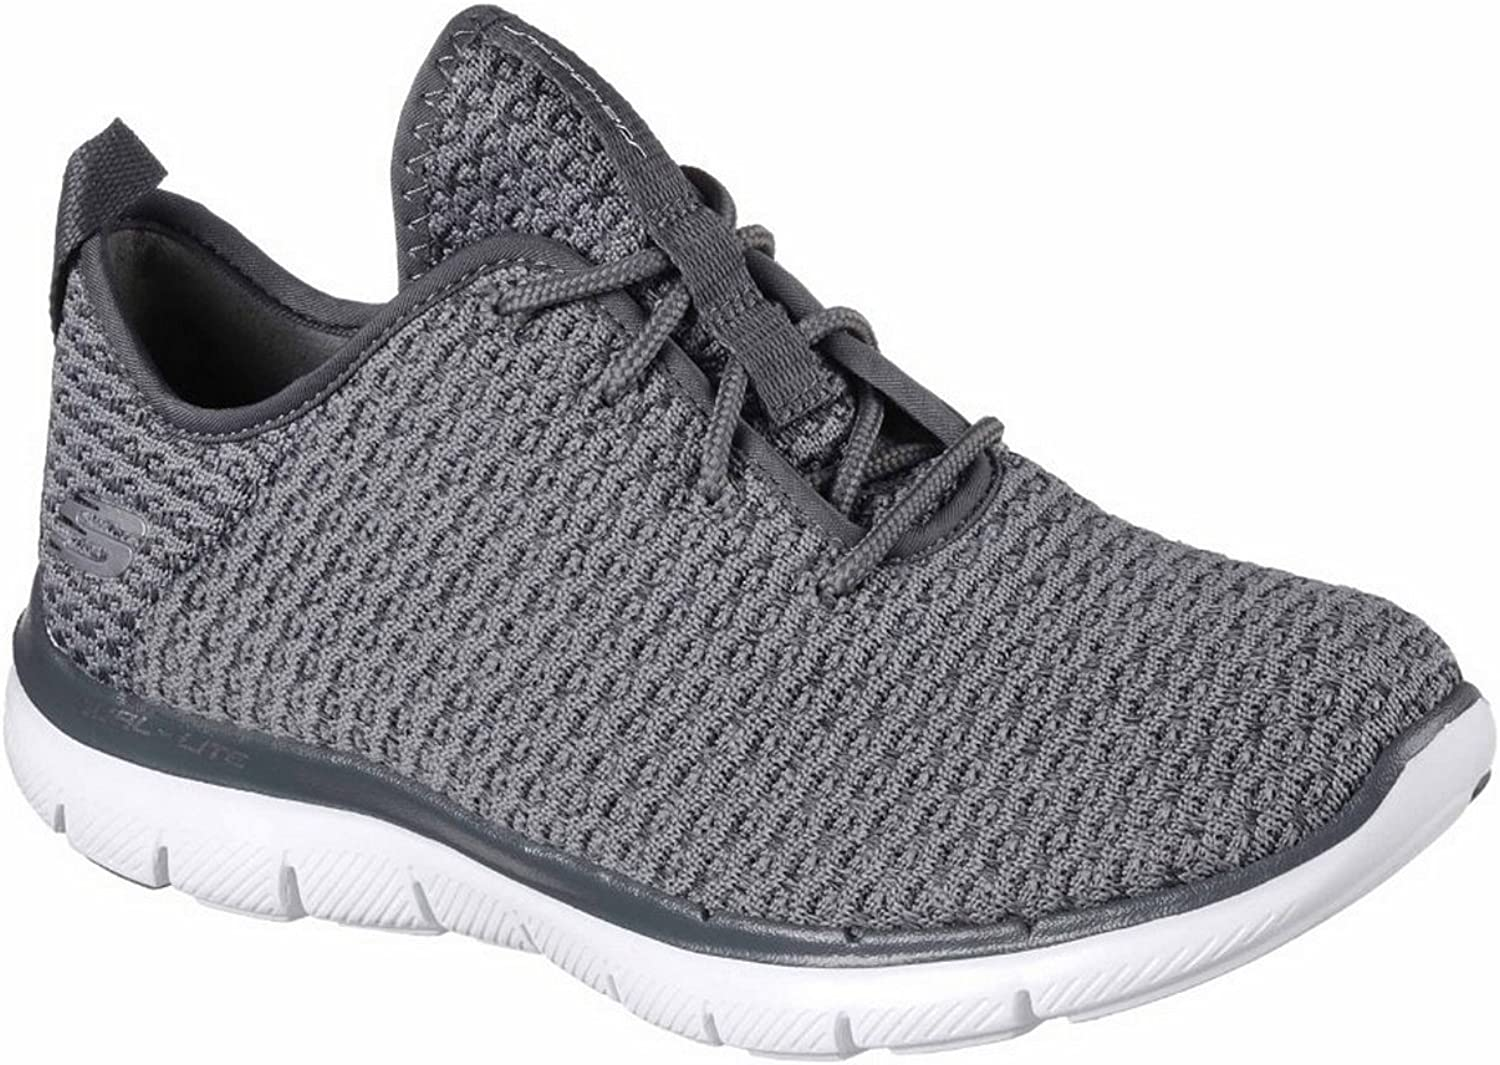 Skechers Womens Ladies SK12773 Flex Appeal 2.0 - Bold Move Sports shoes Trainers